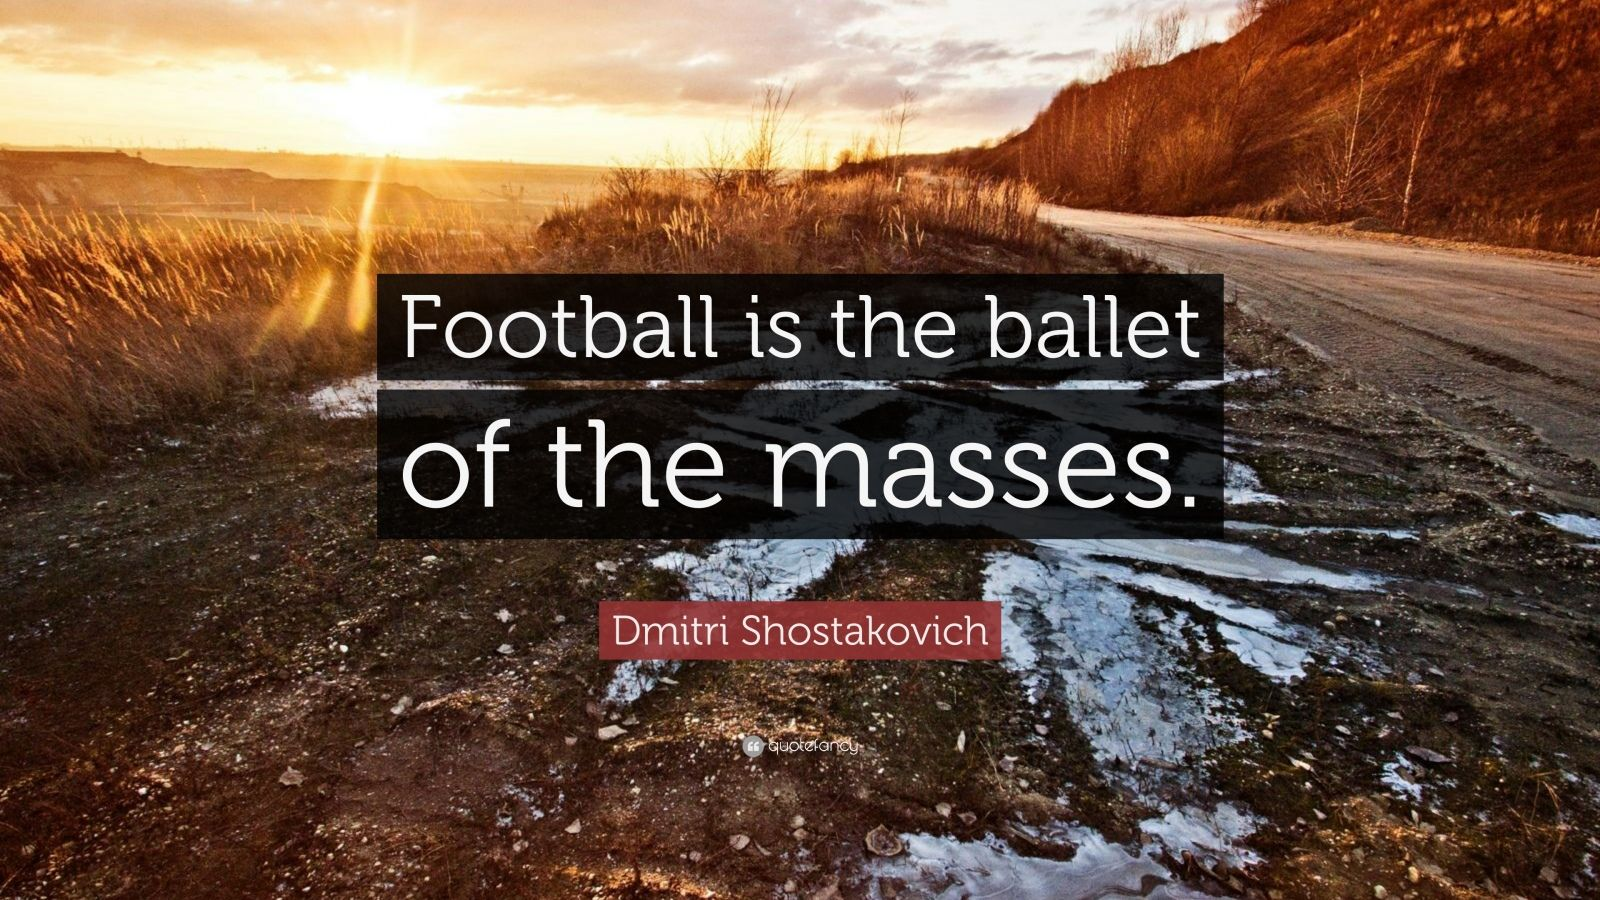 football is the ballet of masses Football is the ballet of the masses more quotes by: dmitri shostakovich football.